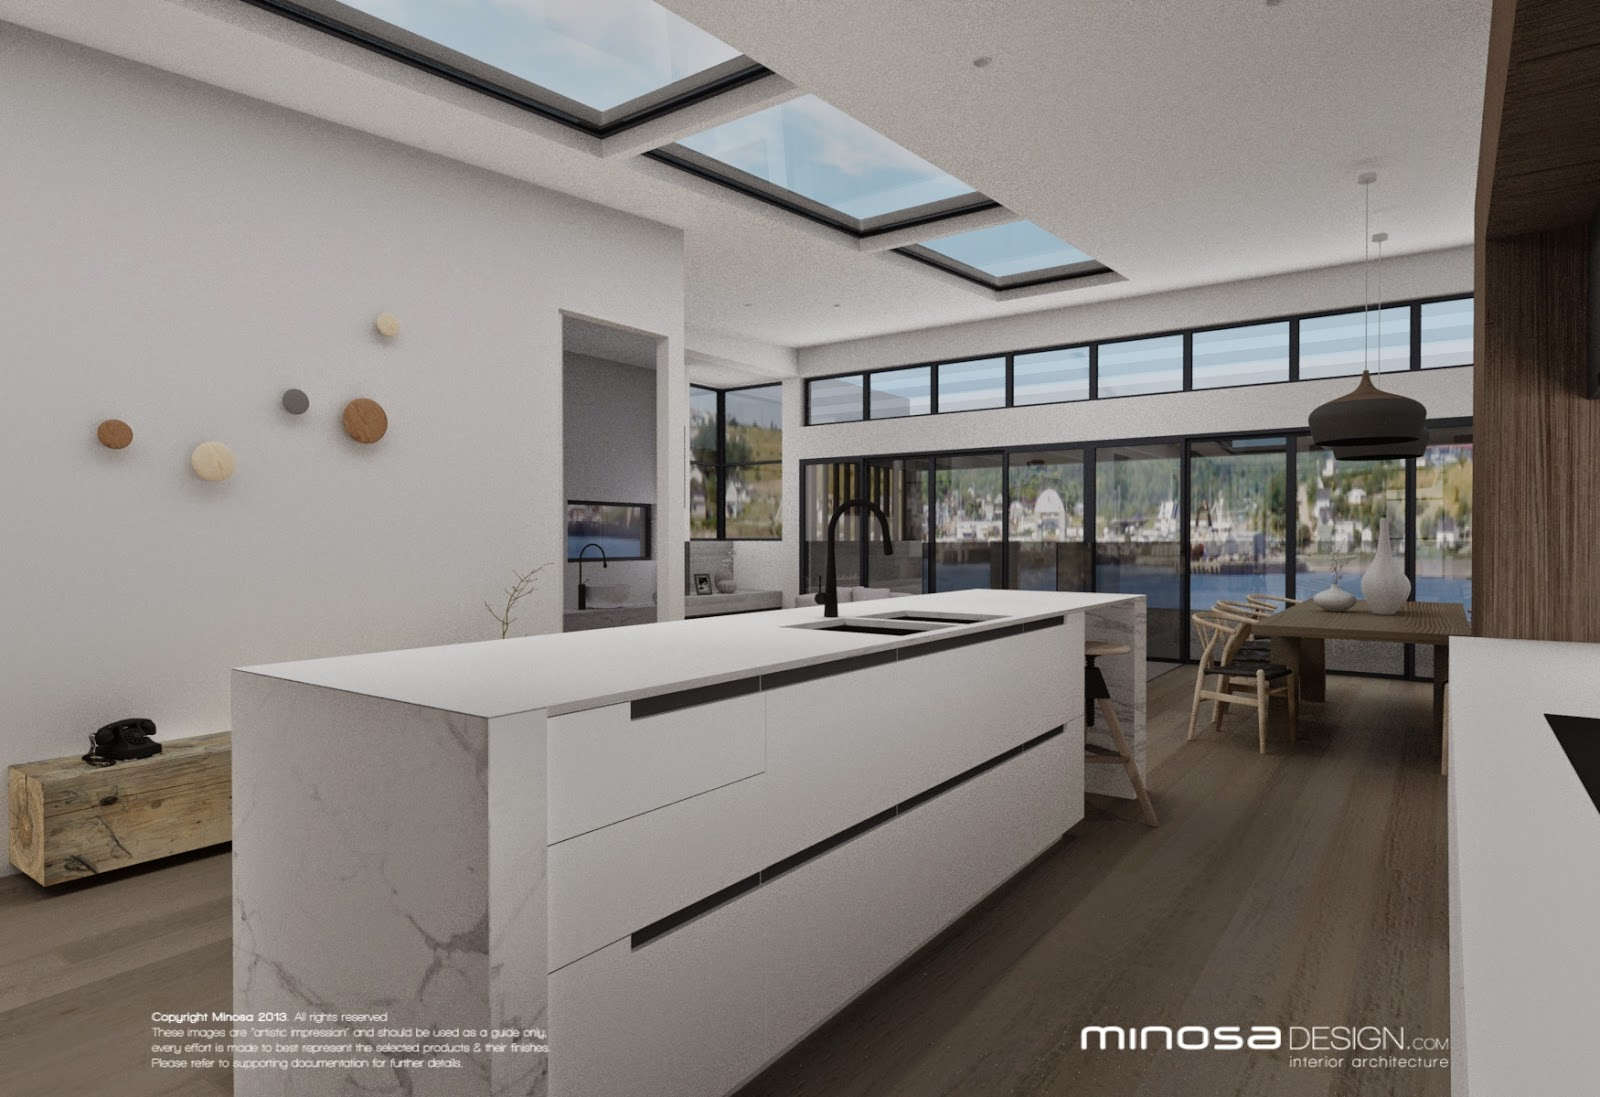 Minosa The Modernliving room Centred around the kitchen